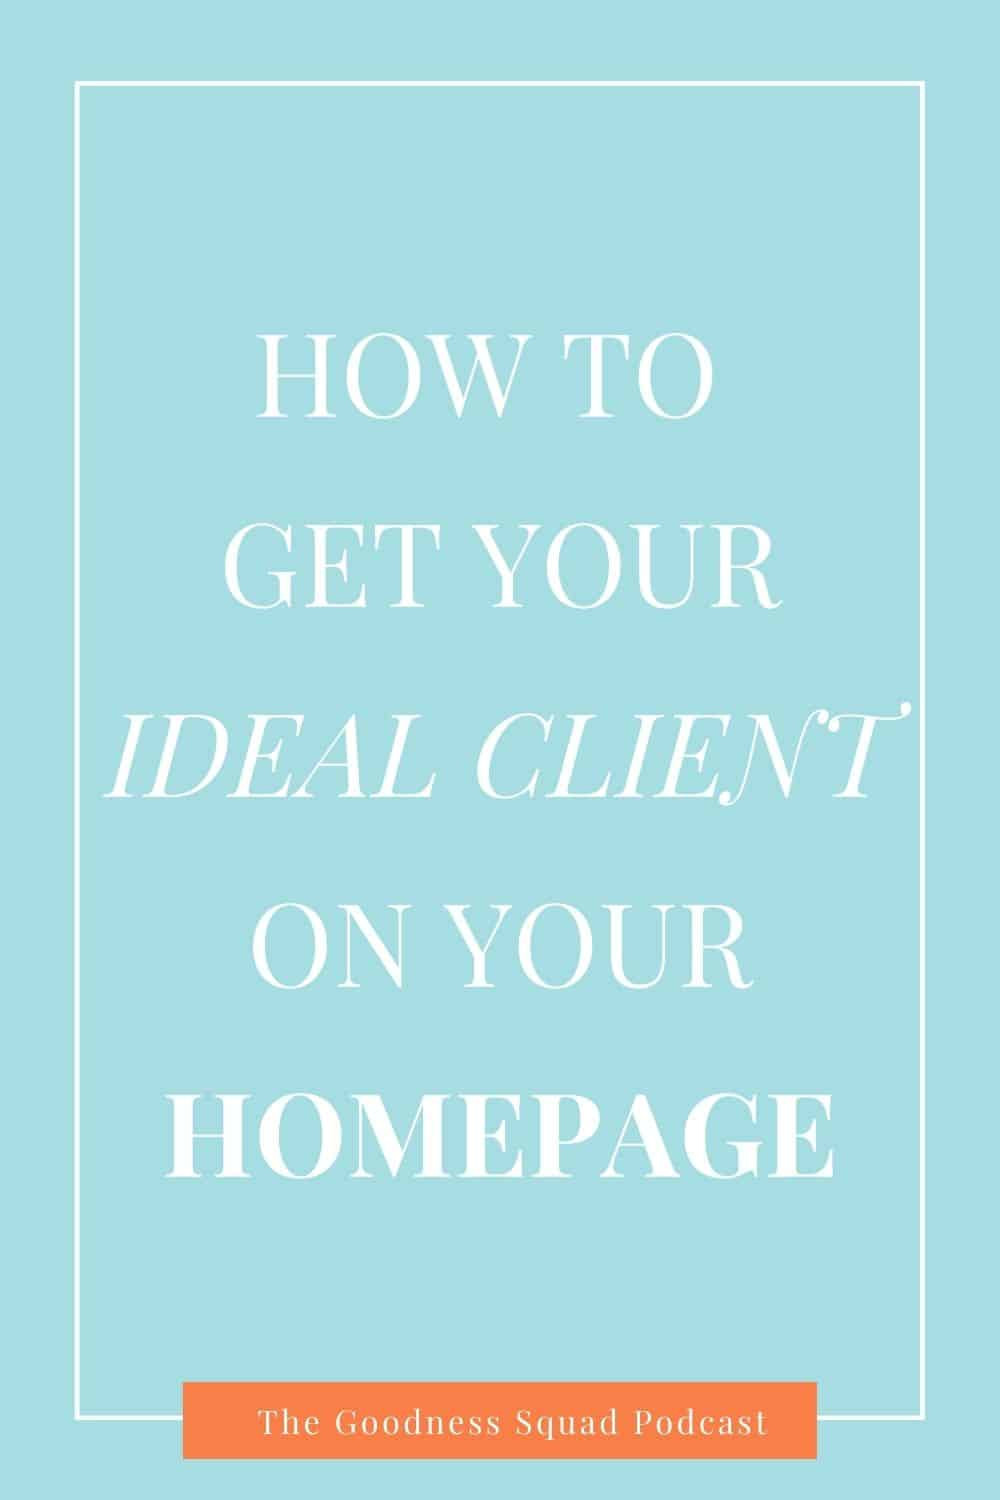 093_5 tips to get your ideal client to visit your homepage